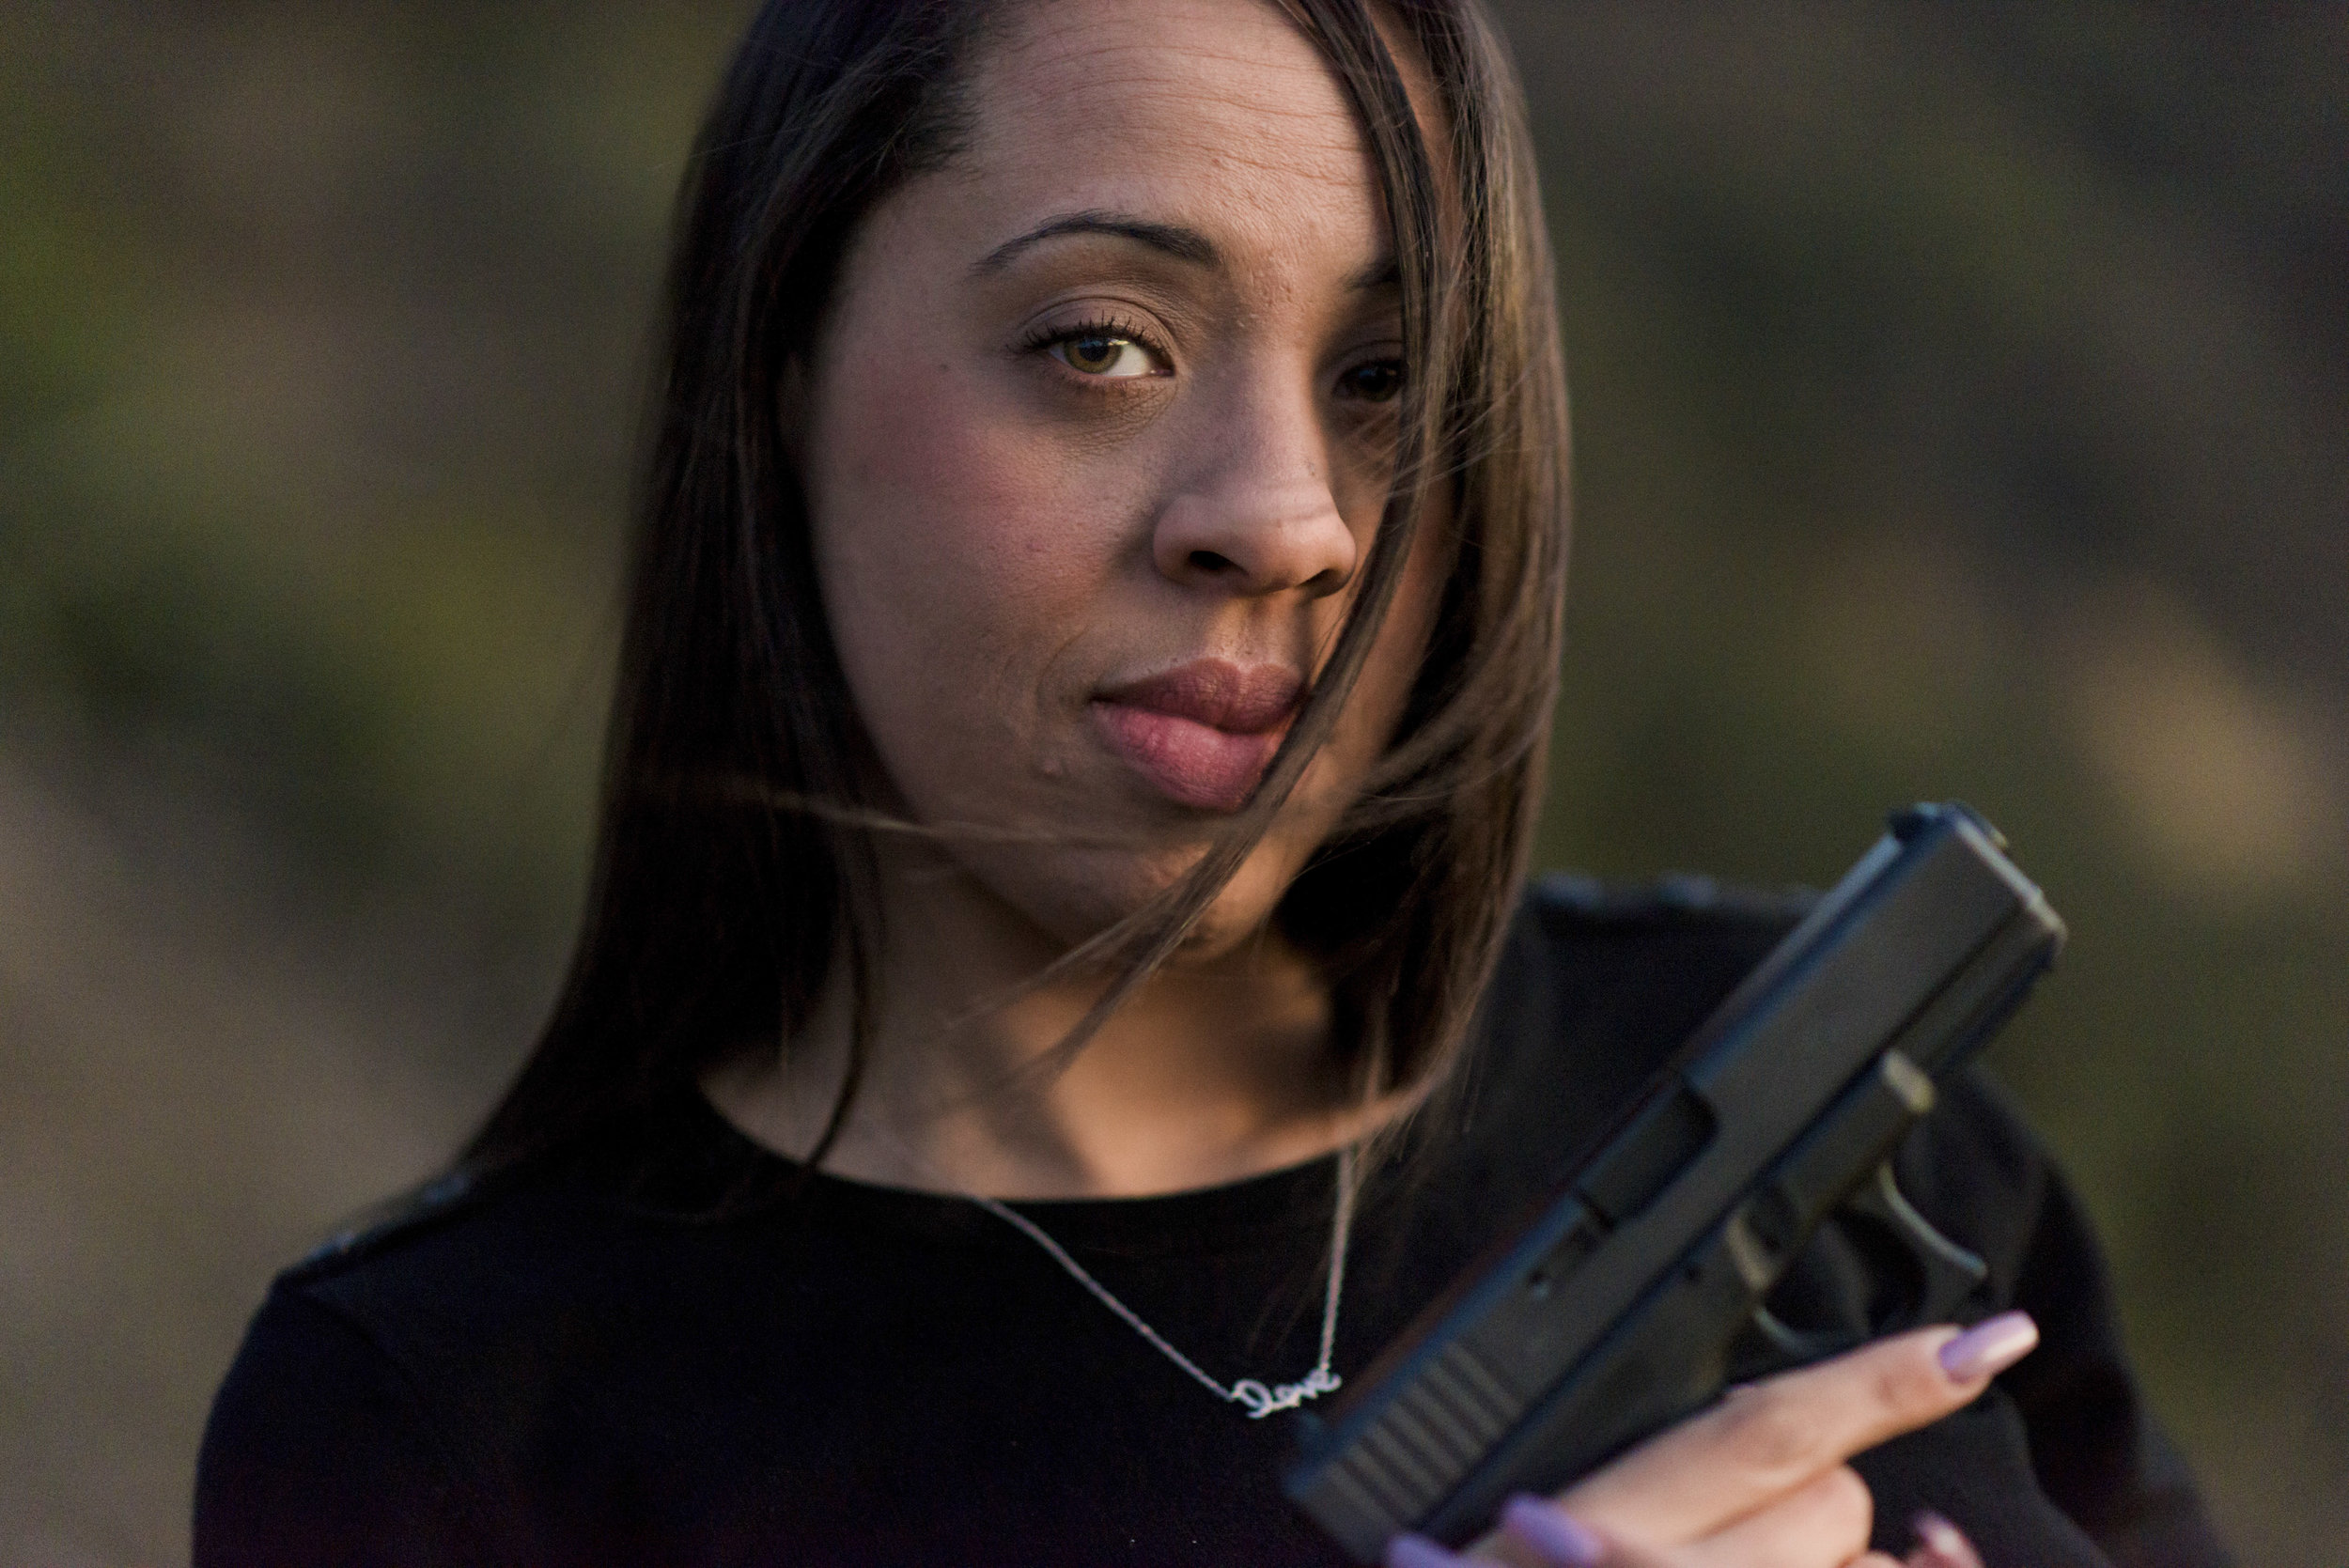 women and guns-1.jpg